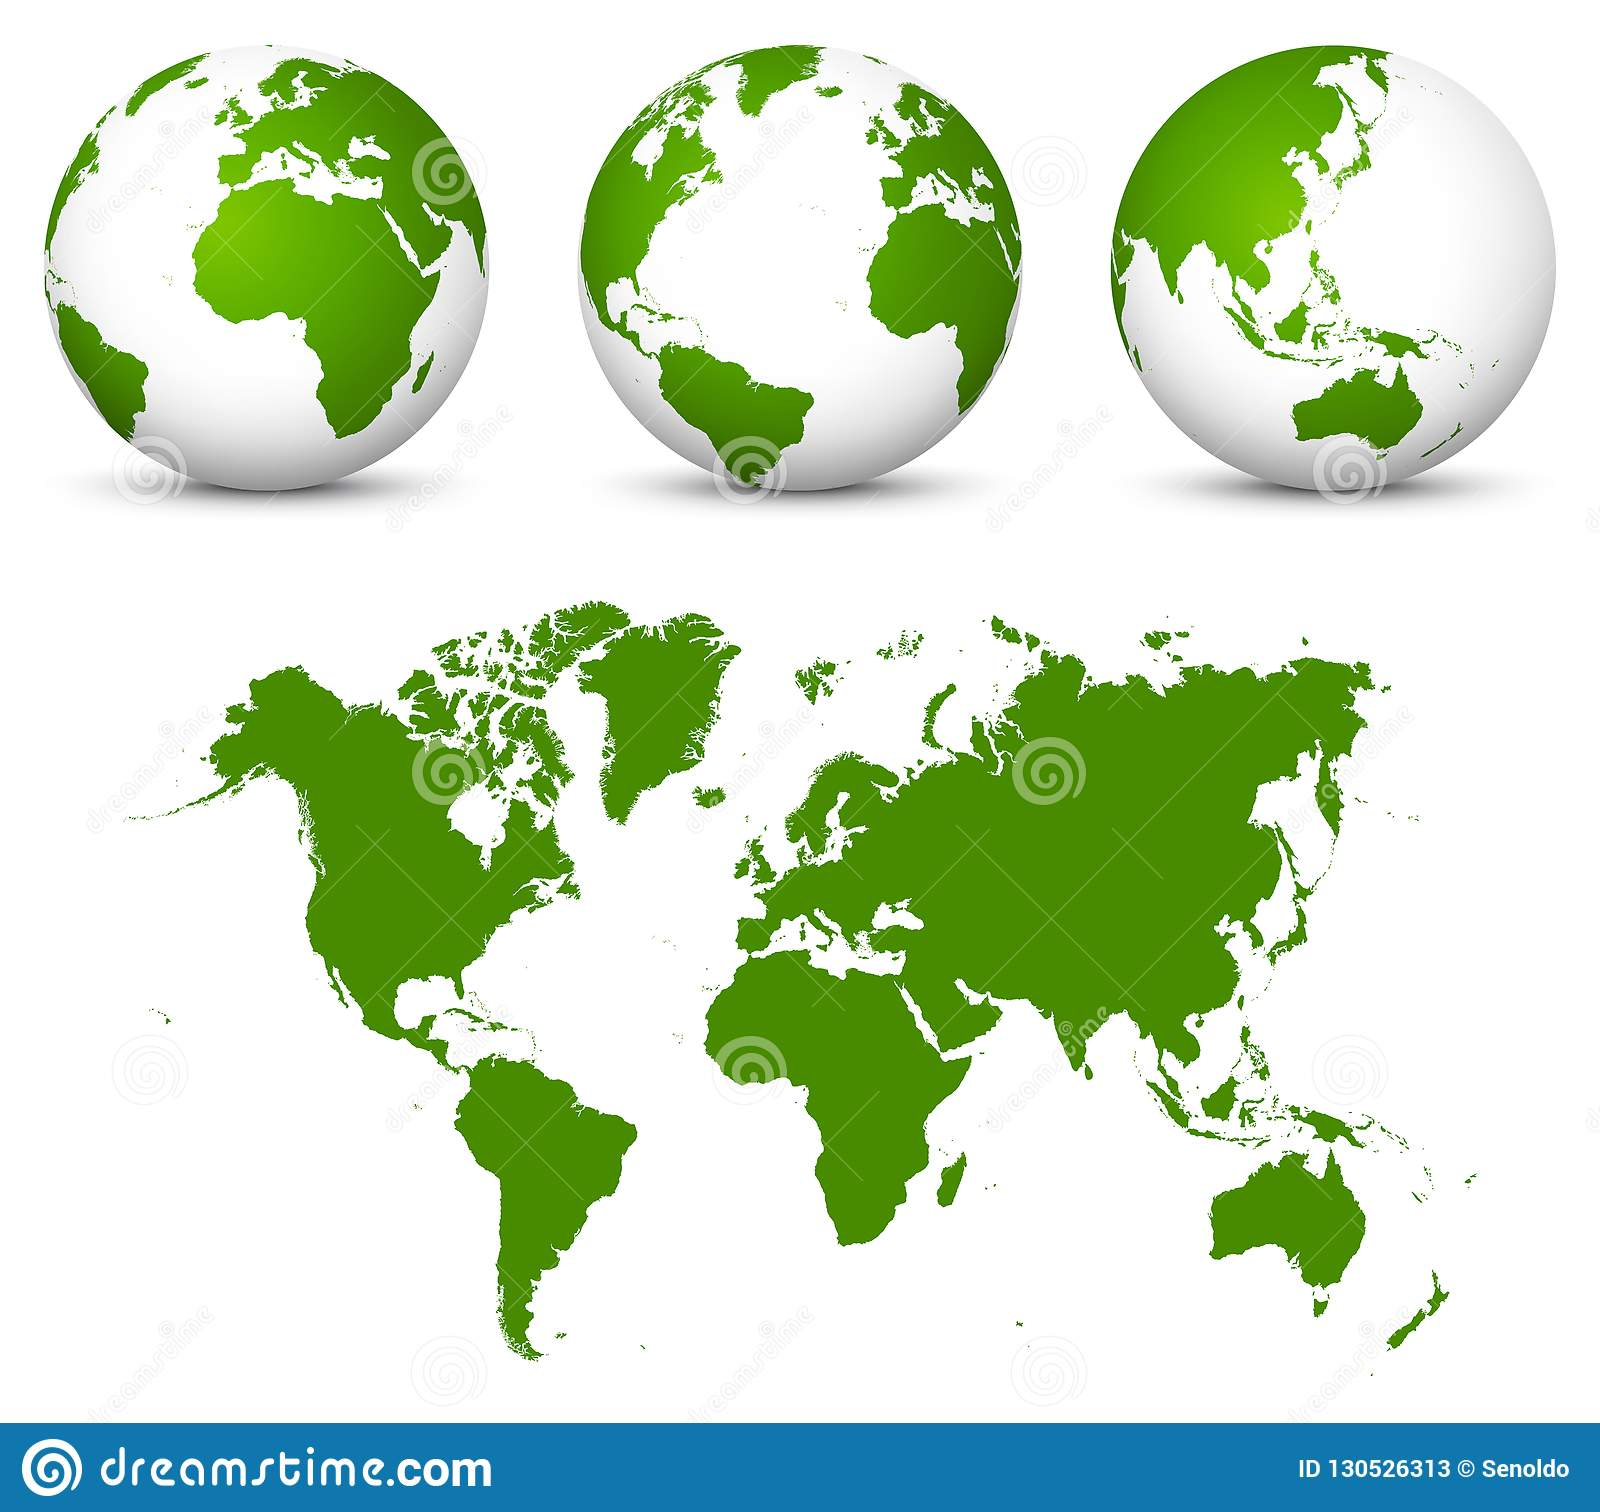 Color Your Own World Map.Green 3d Vector World Globe Collection And Undistorted 2d Earth